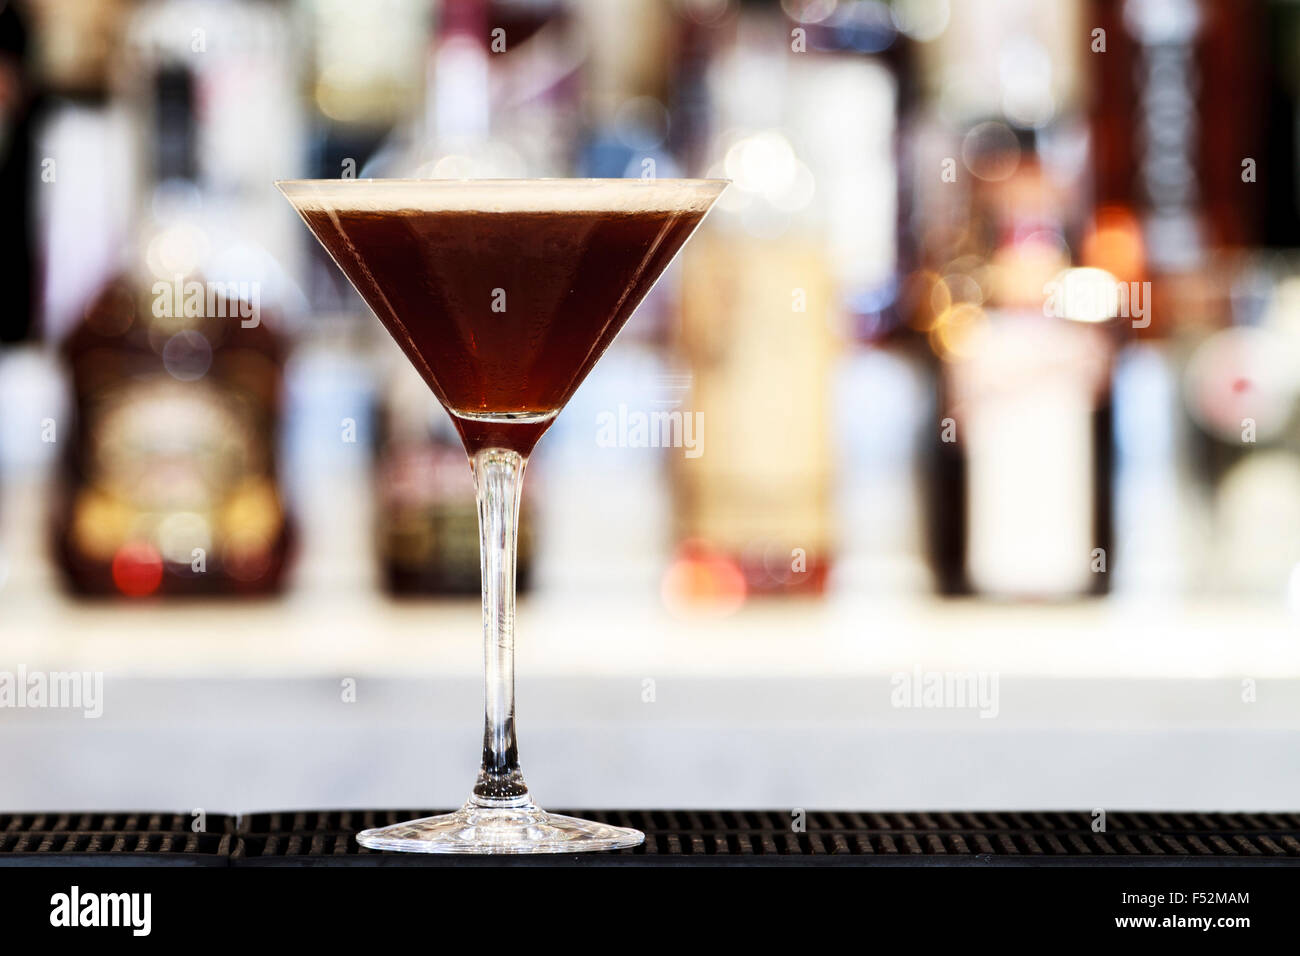 Espresso Martini Cocktail on a bar top - Stock Image